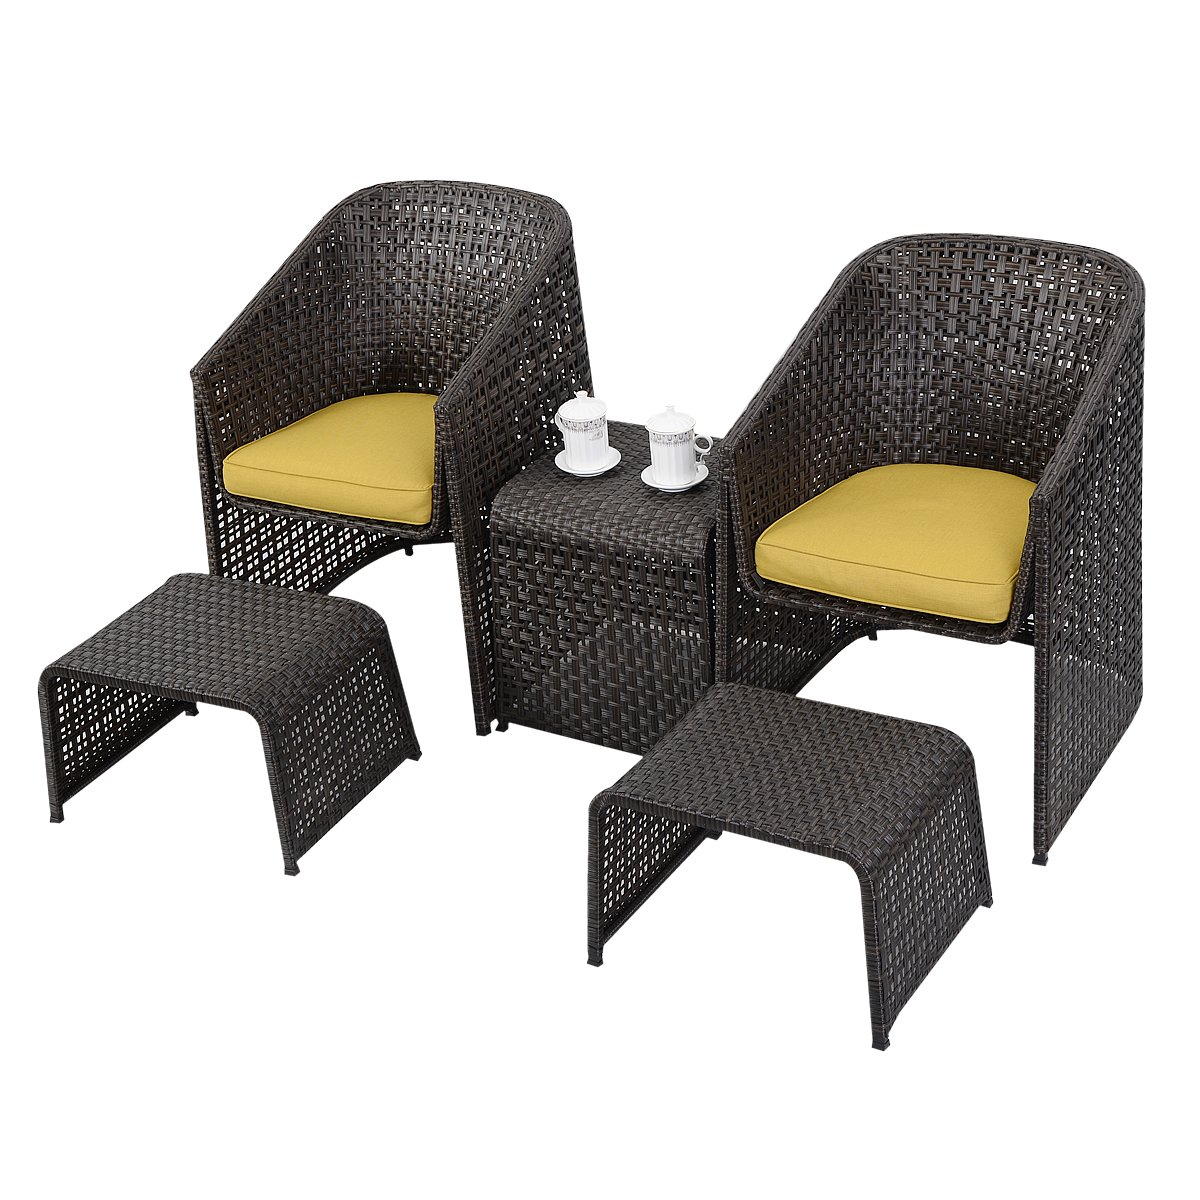 sitzgruppe gartenm bel rattan lounge set polyratten rattenm bel polyester edelstahl tisch sofa. Black Bedroom Furniture Sets. Home Design Ideas